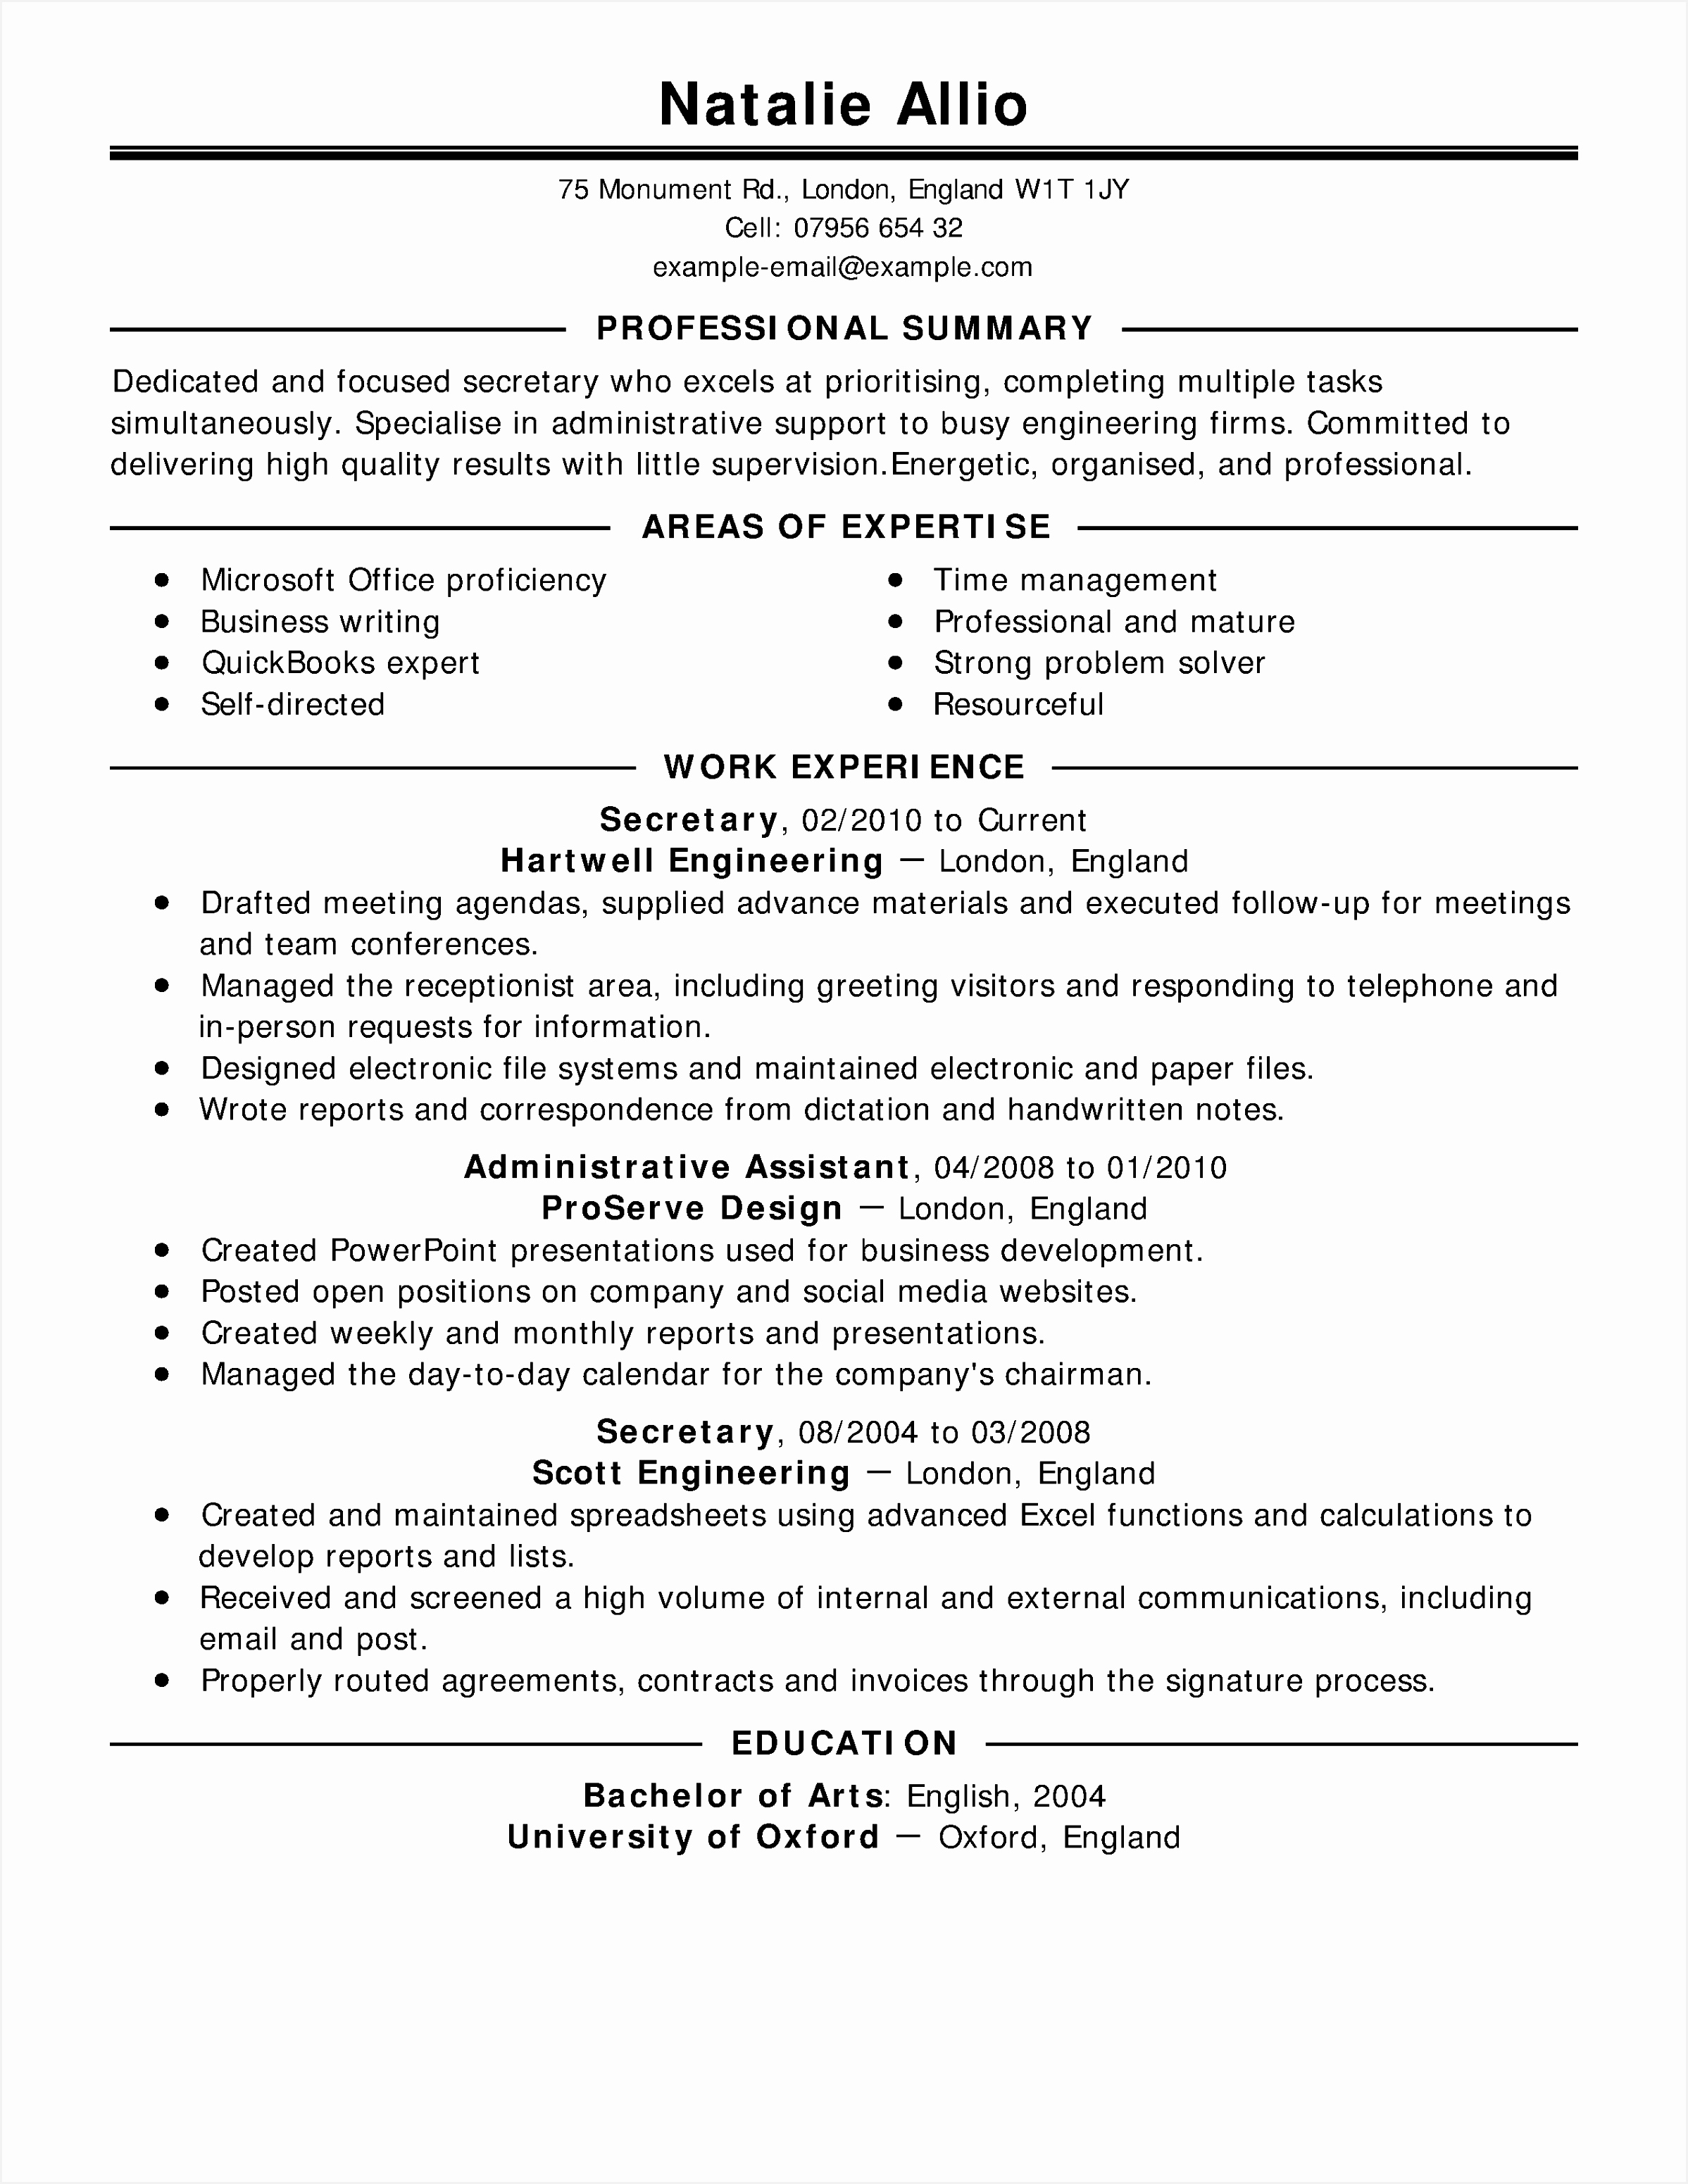 Resume Examples Executive assistant Wckfh Awesome Objective for Medical Fice assistant Resume Personal Resume31022397